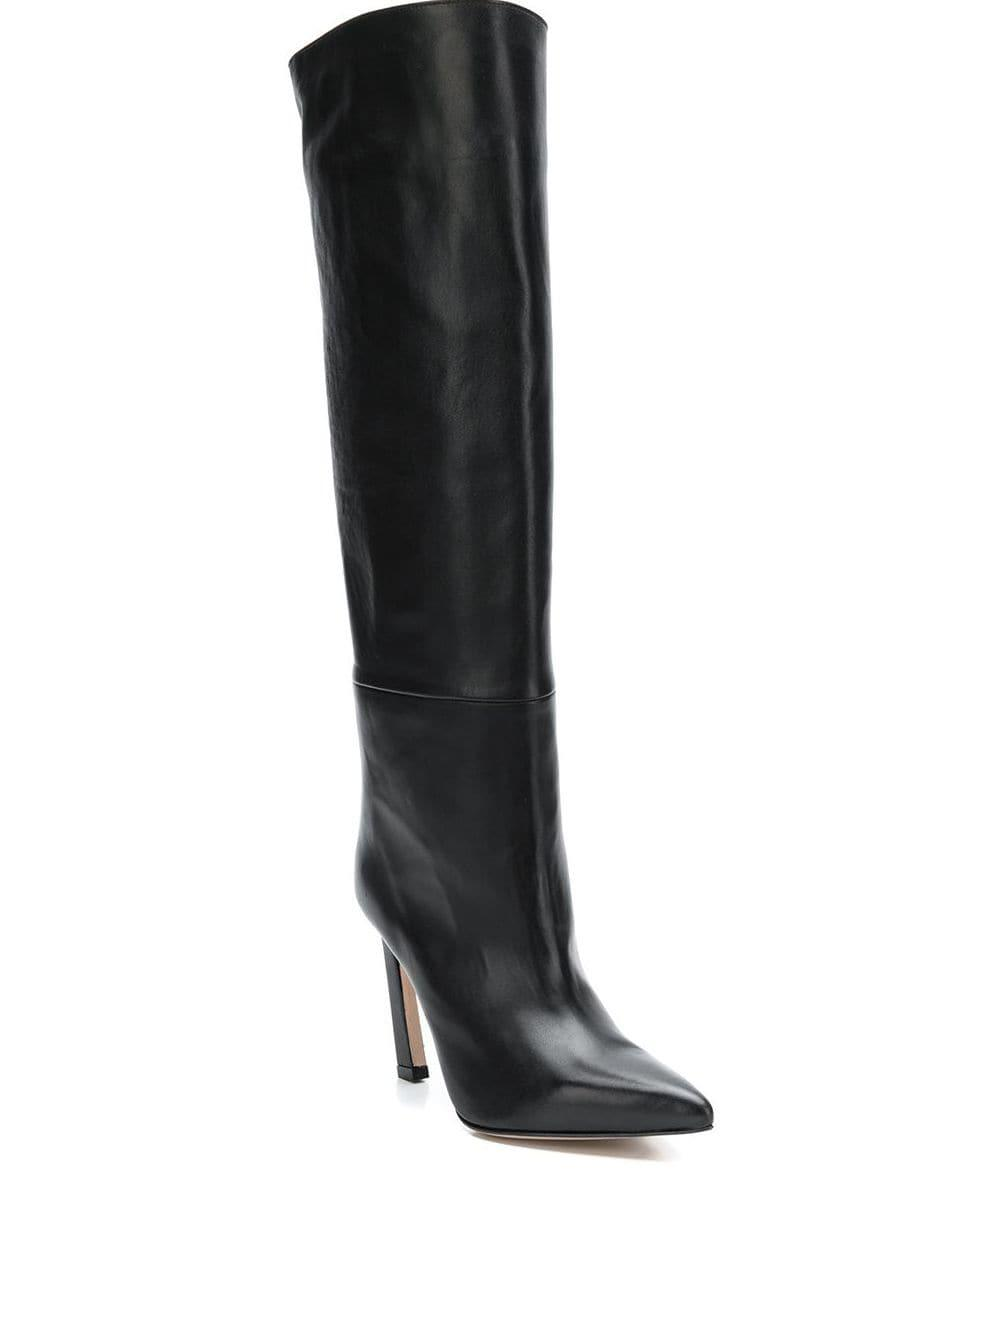 Stuart Weitzman Leather Aces Knee-length Boots in Black